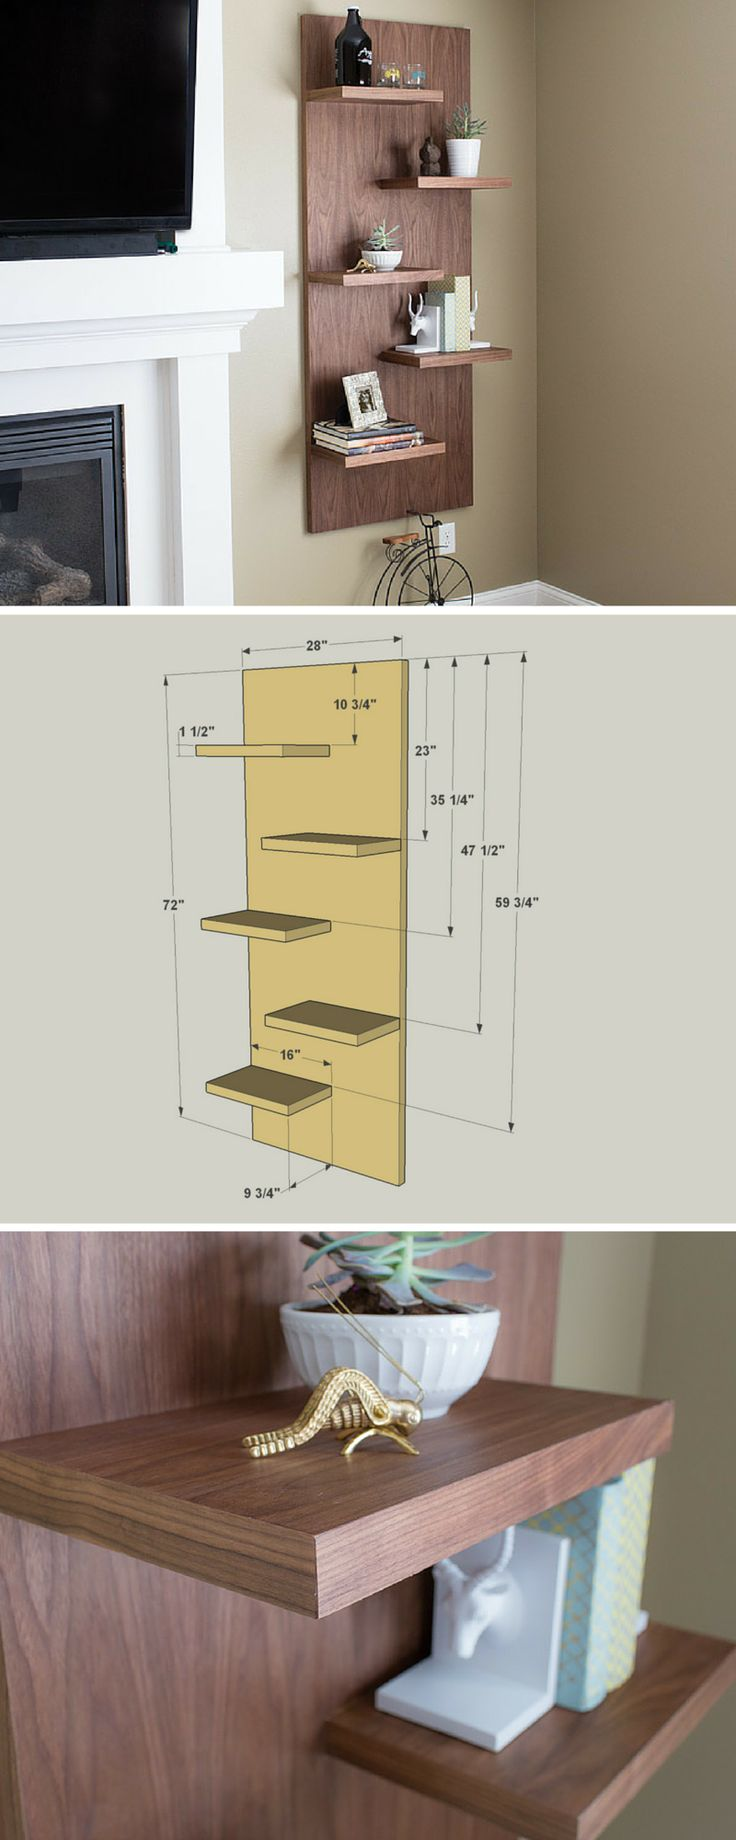 Add a dramatic style statement in any room with these floating shelves. Though they look like they're made of solid wood (walnut in our case), this project is actually all plywood that has iron-on edging to cover the exposed plywood edges. You'll be amazed how easy this shelf unit is to build. FREE PLANS at buildsomething.com